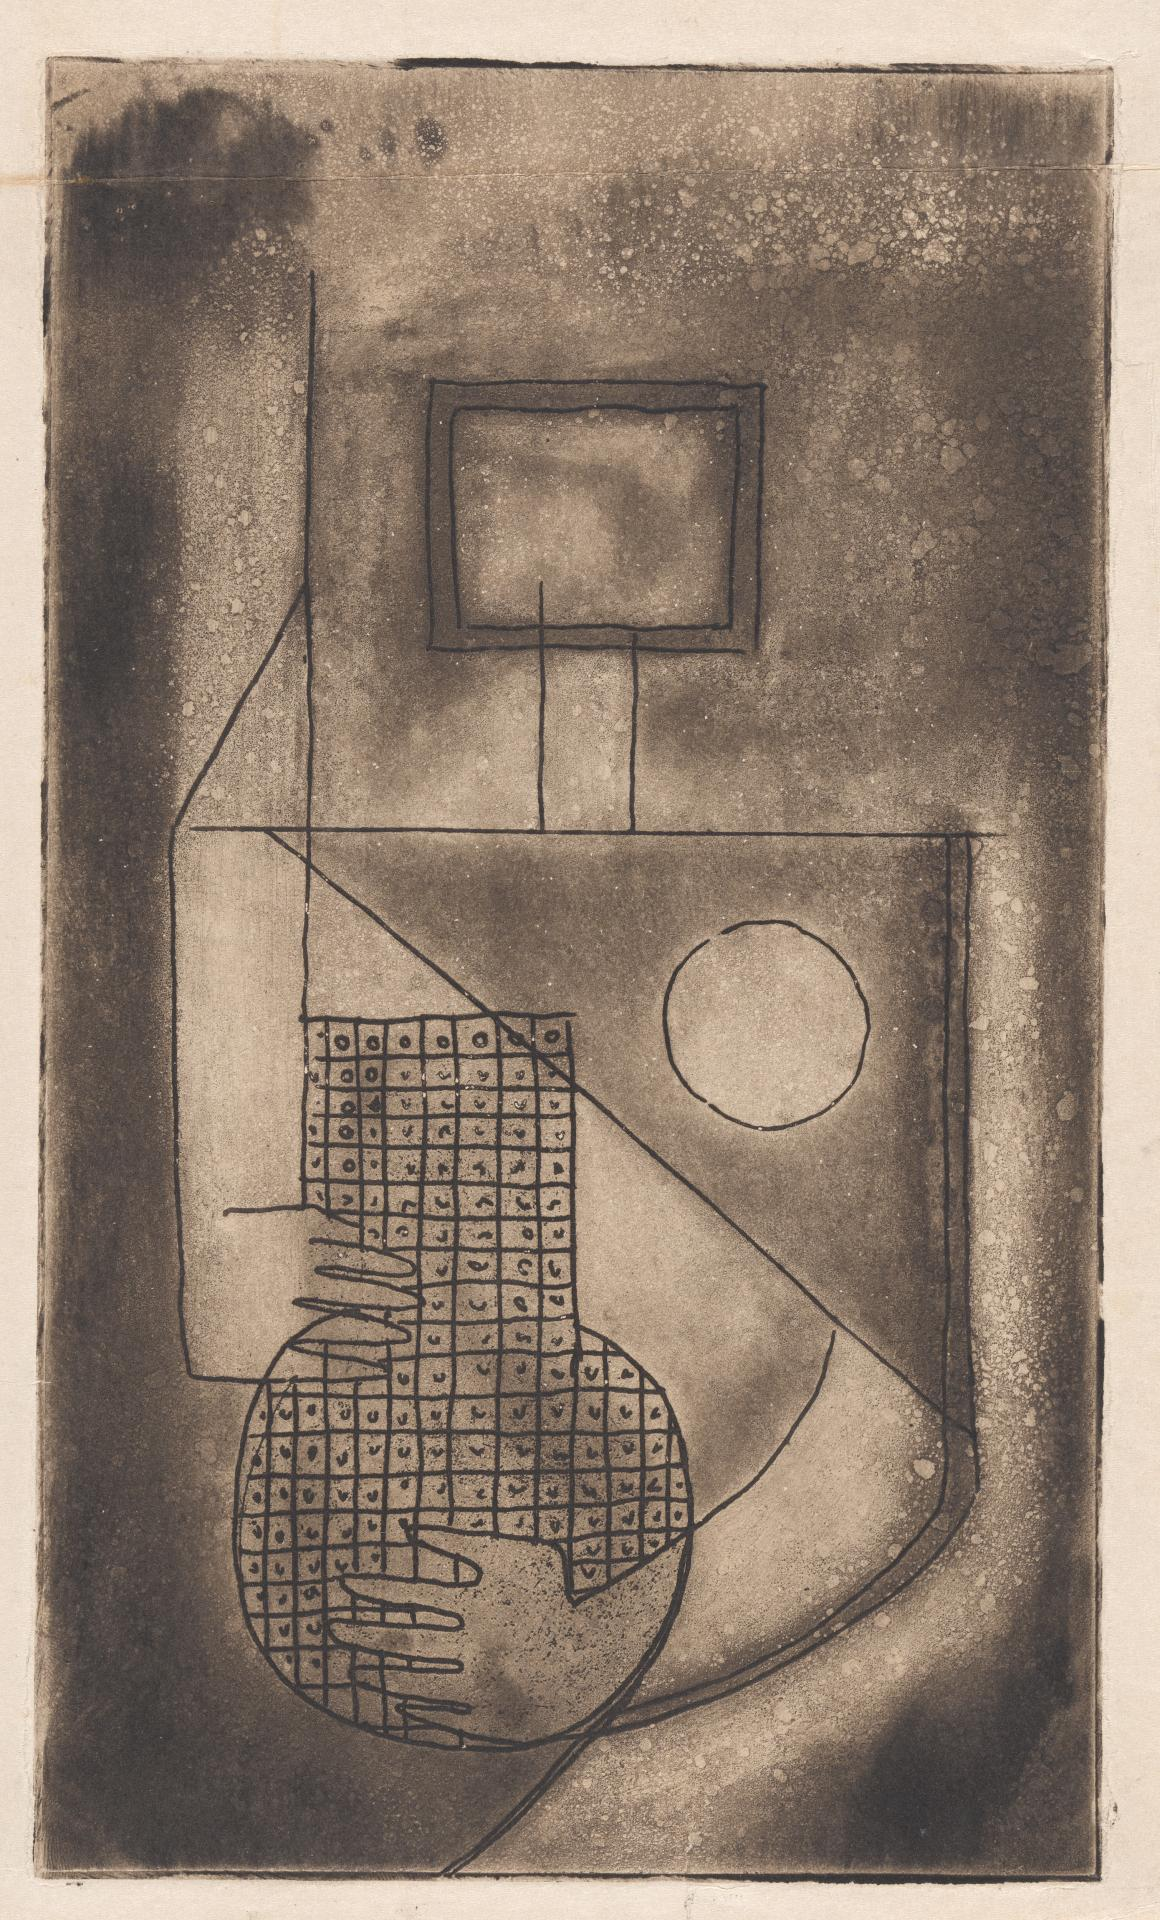 (Cubist form with vase)